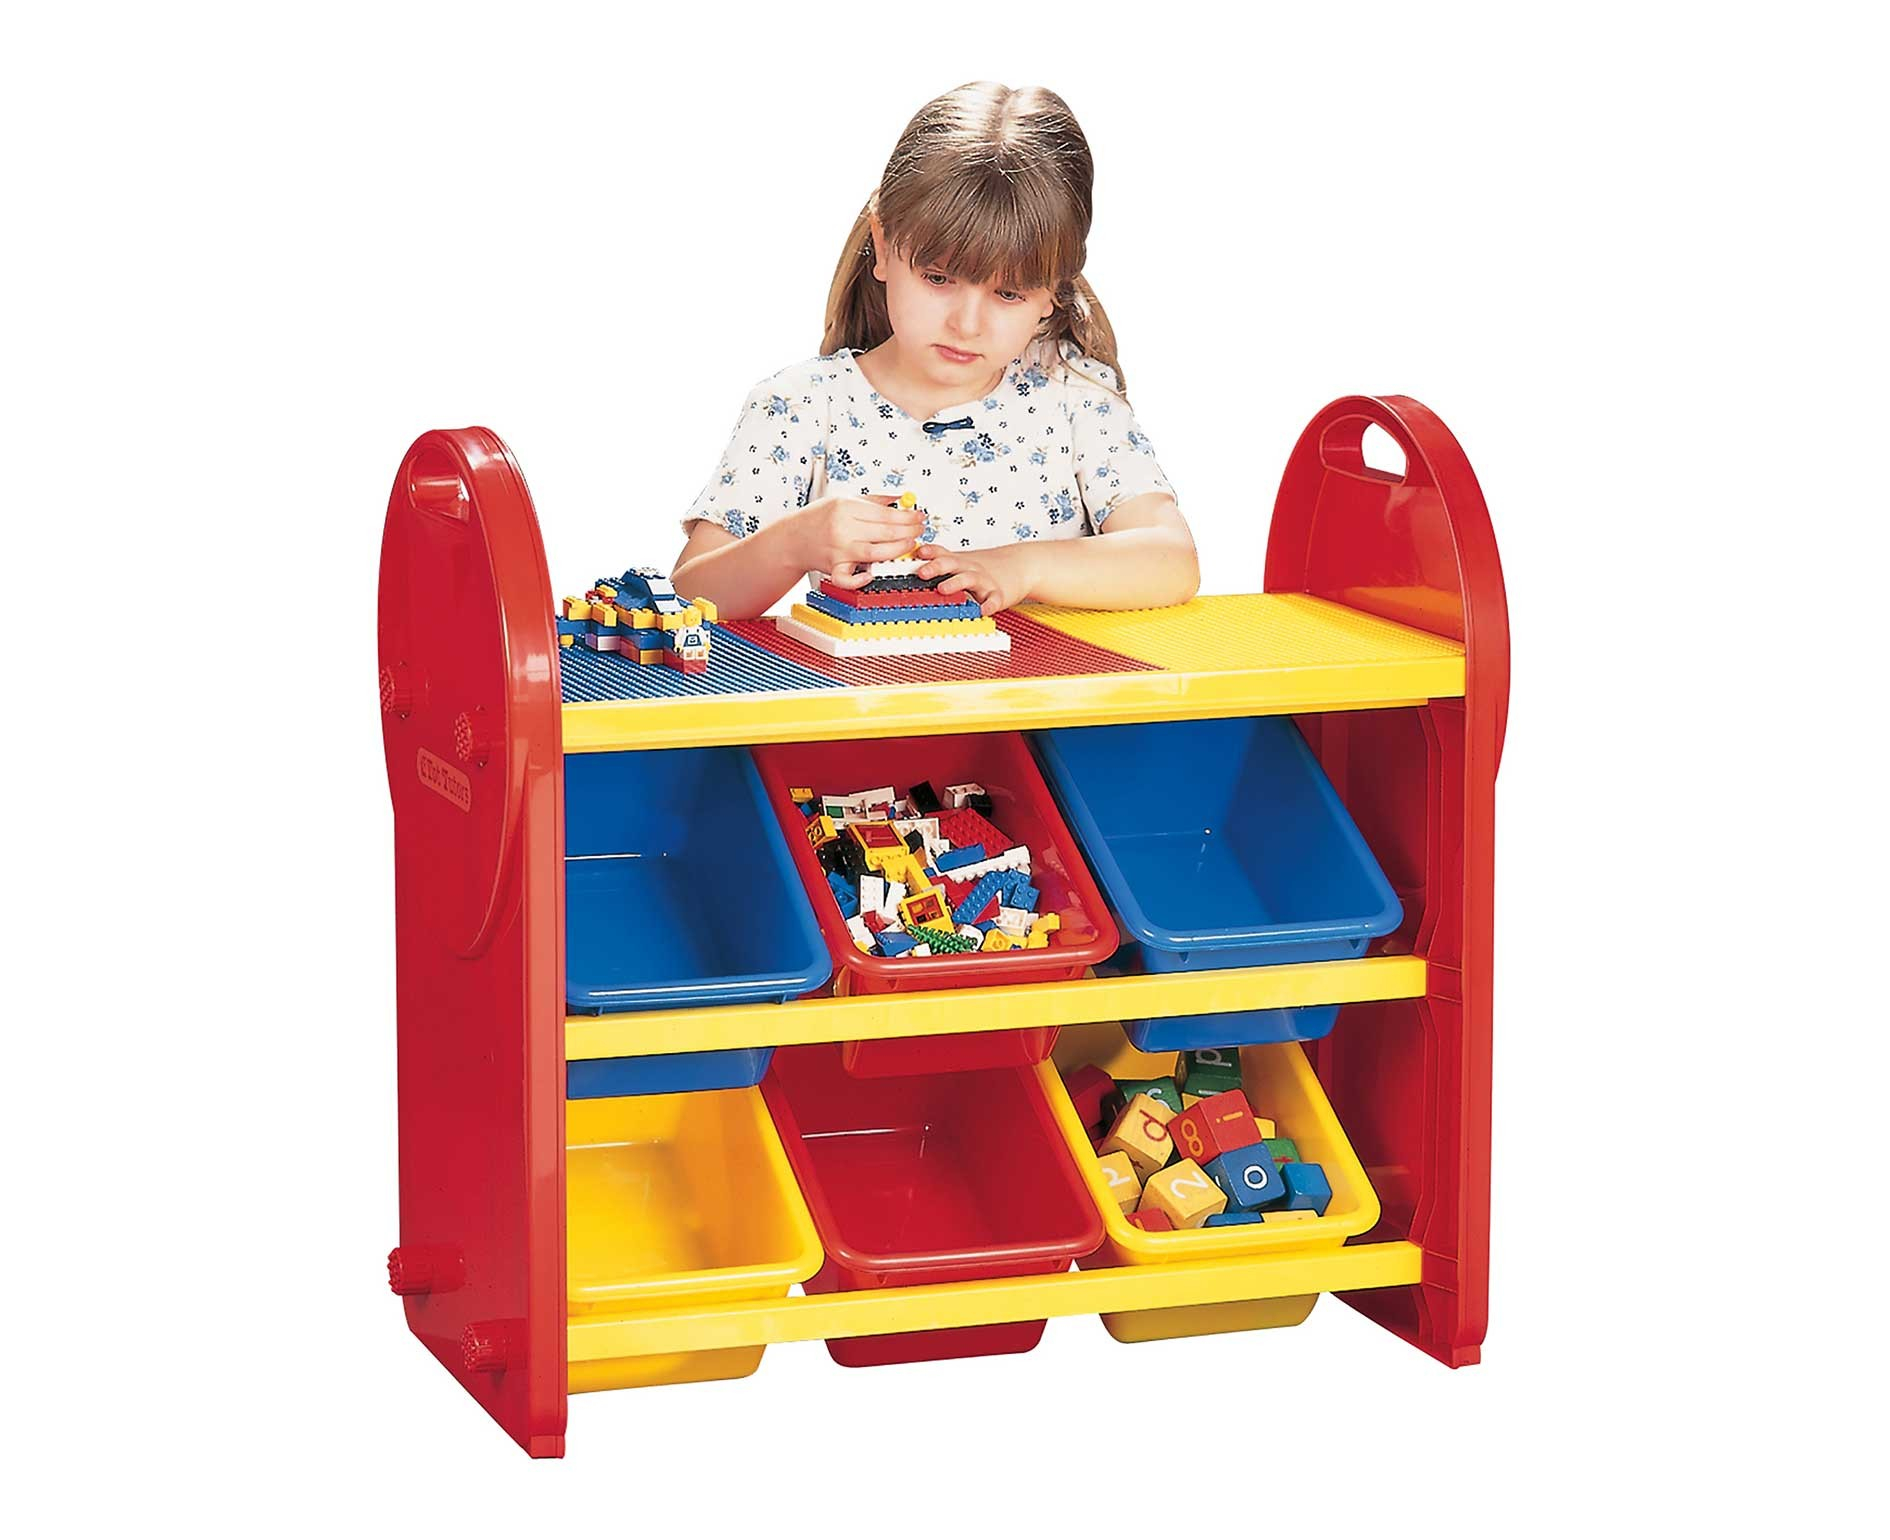 Childrens Plastic Storage 6 Bin Play Organiser Kids Table Chairs intended for dimensions 1890 X 1540